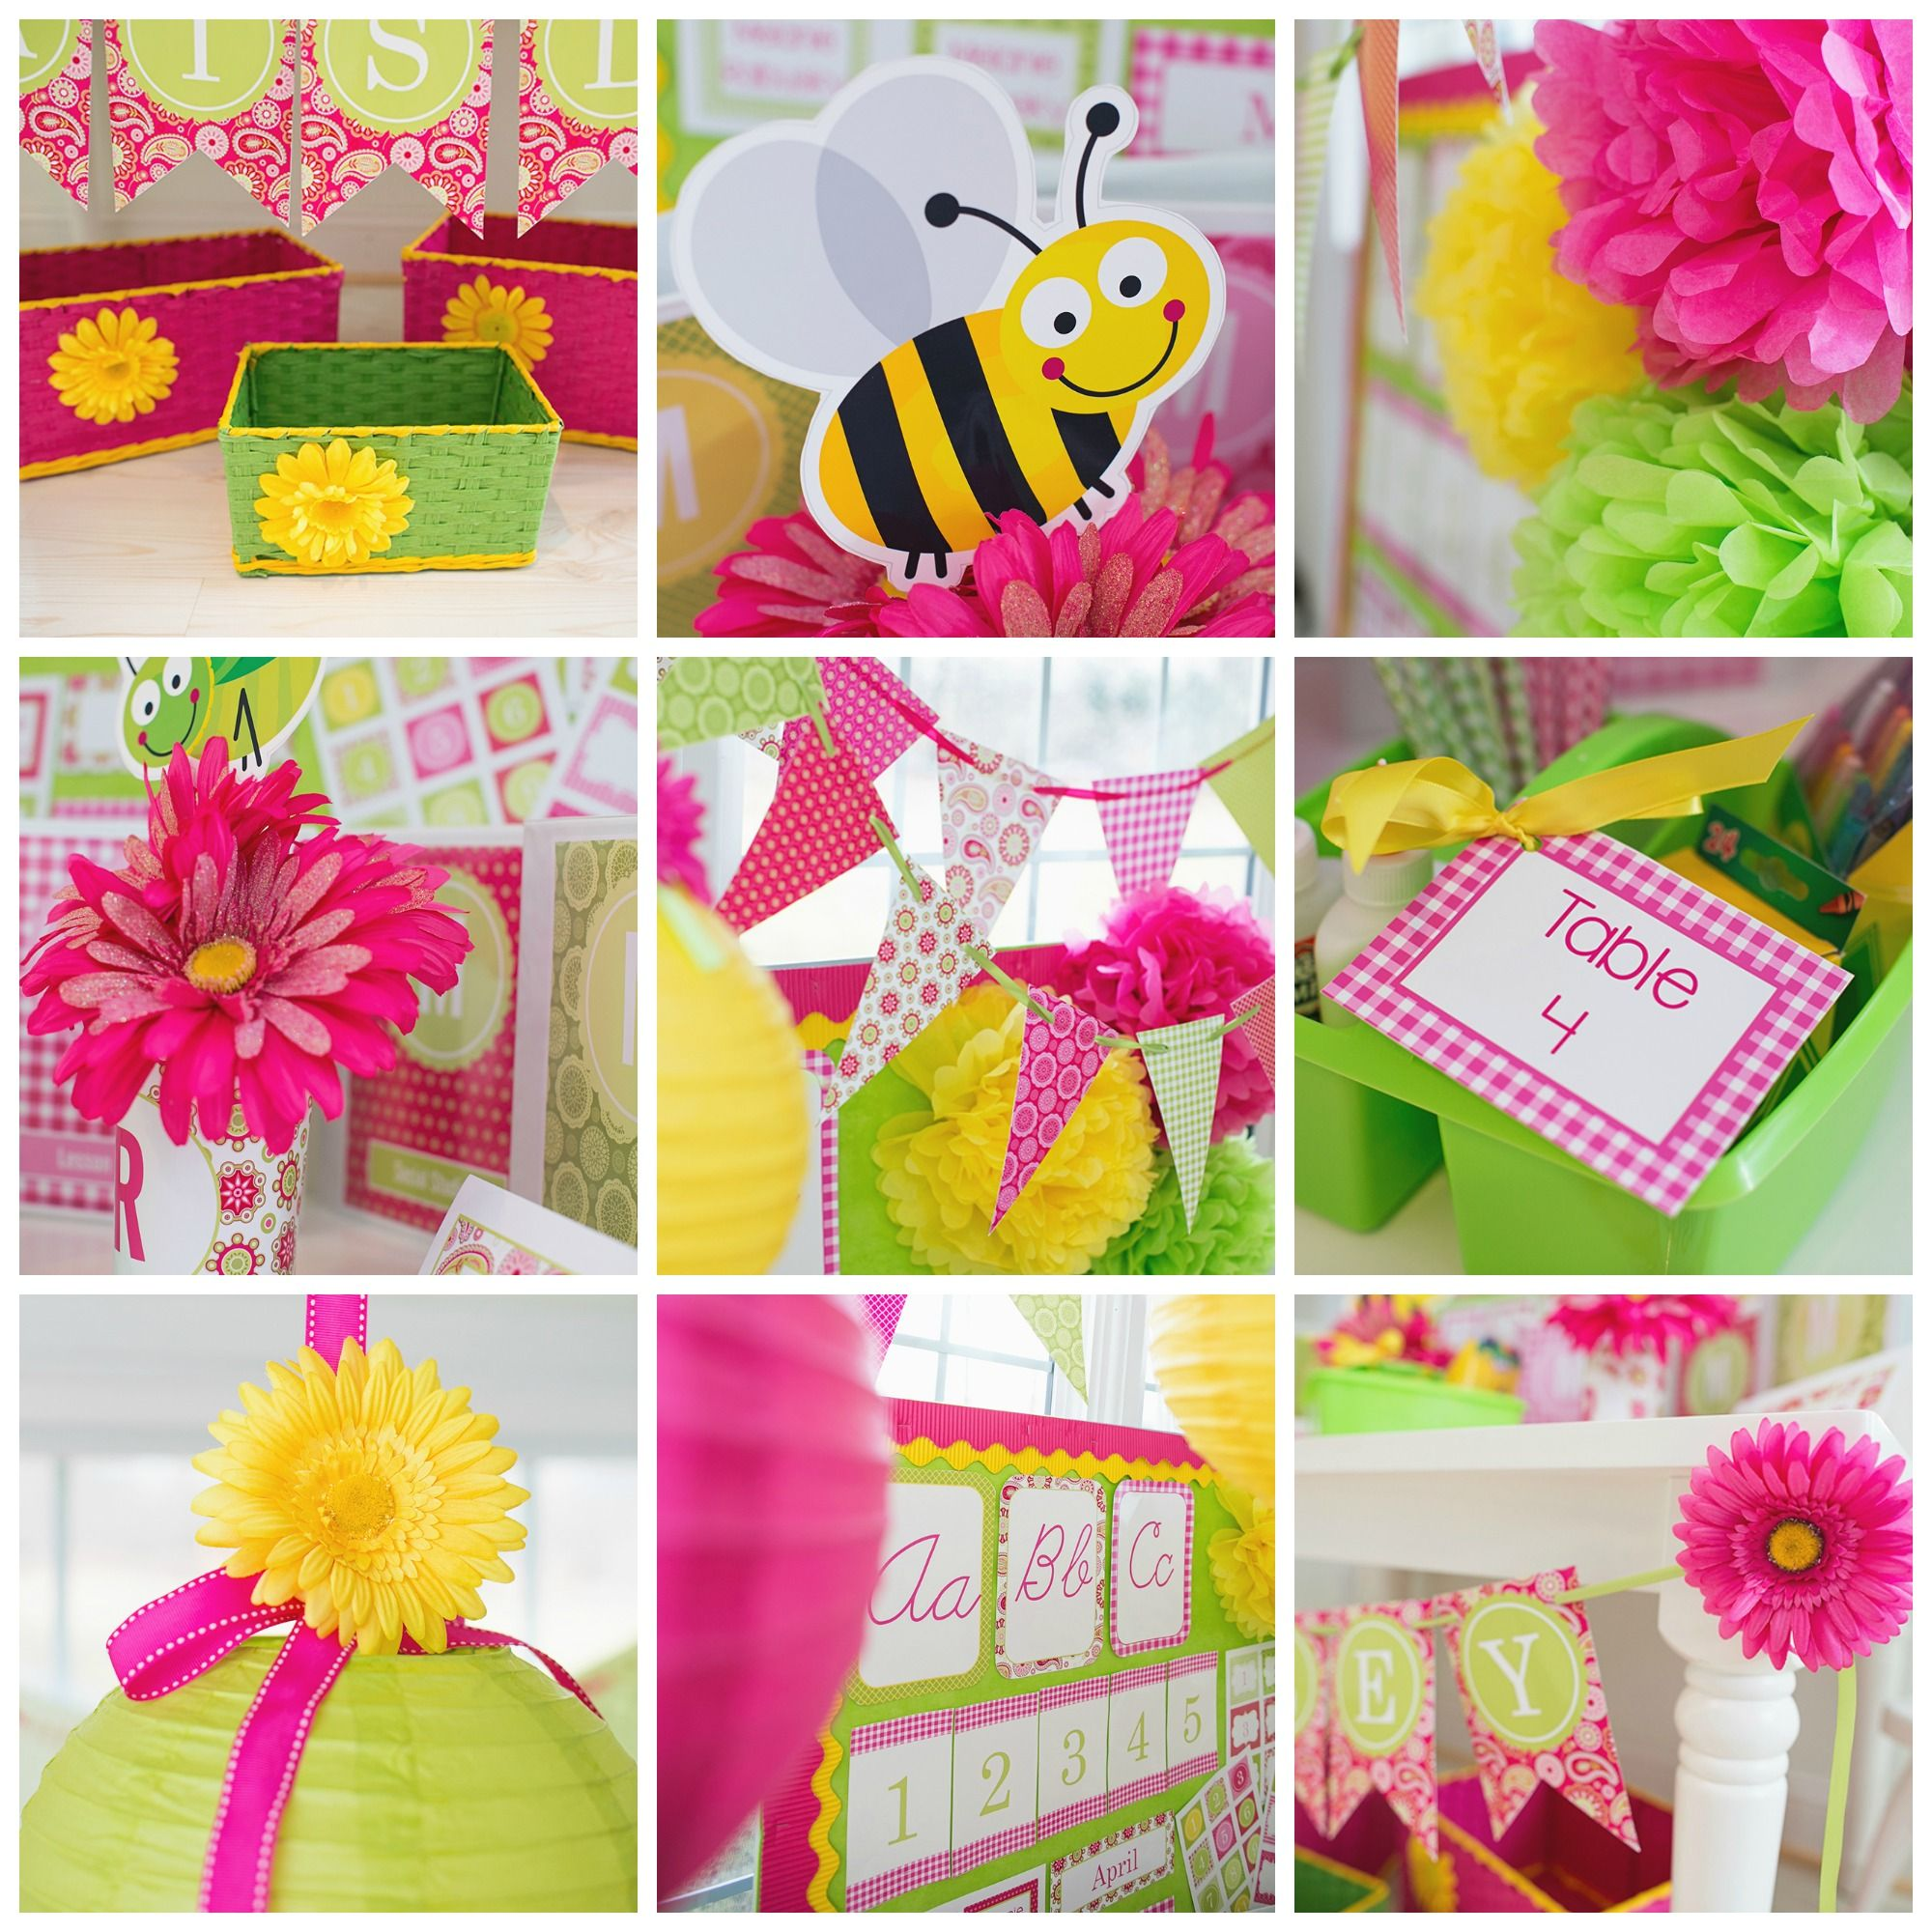 Pink Paisley Garden Classroom Theme And Decor By